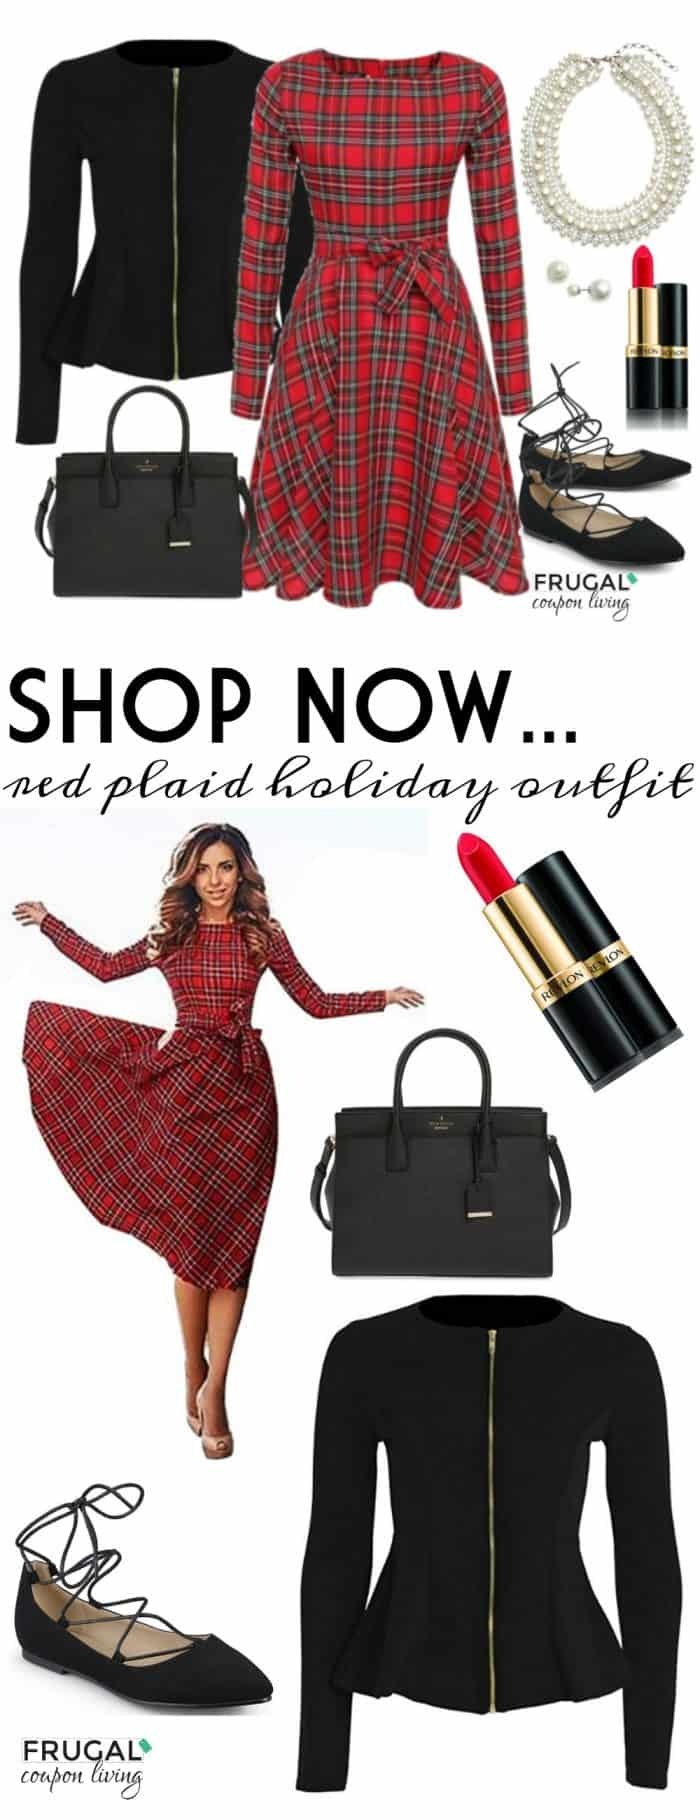 frugal-fashion-friday-red-plaid-holiday-outfit-frugal-coupon-living-long